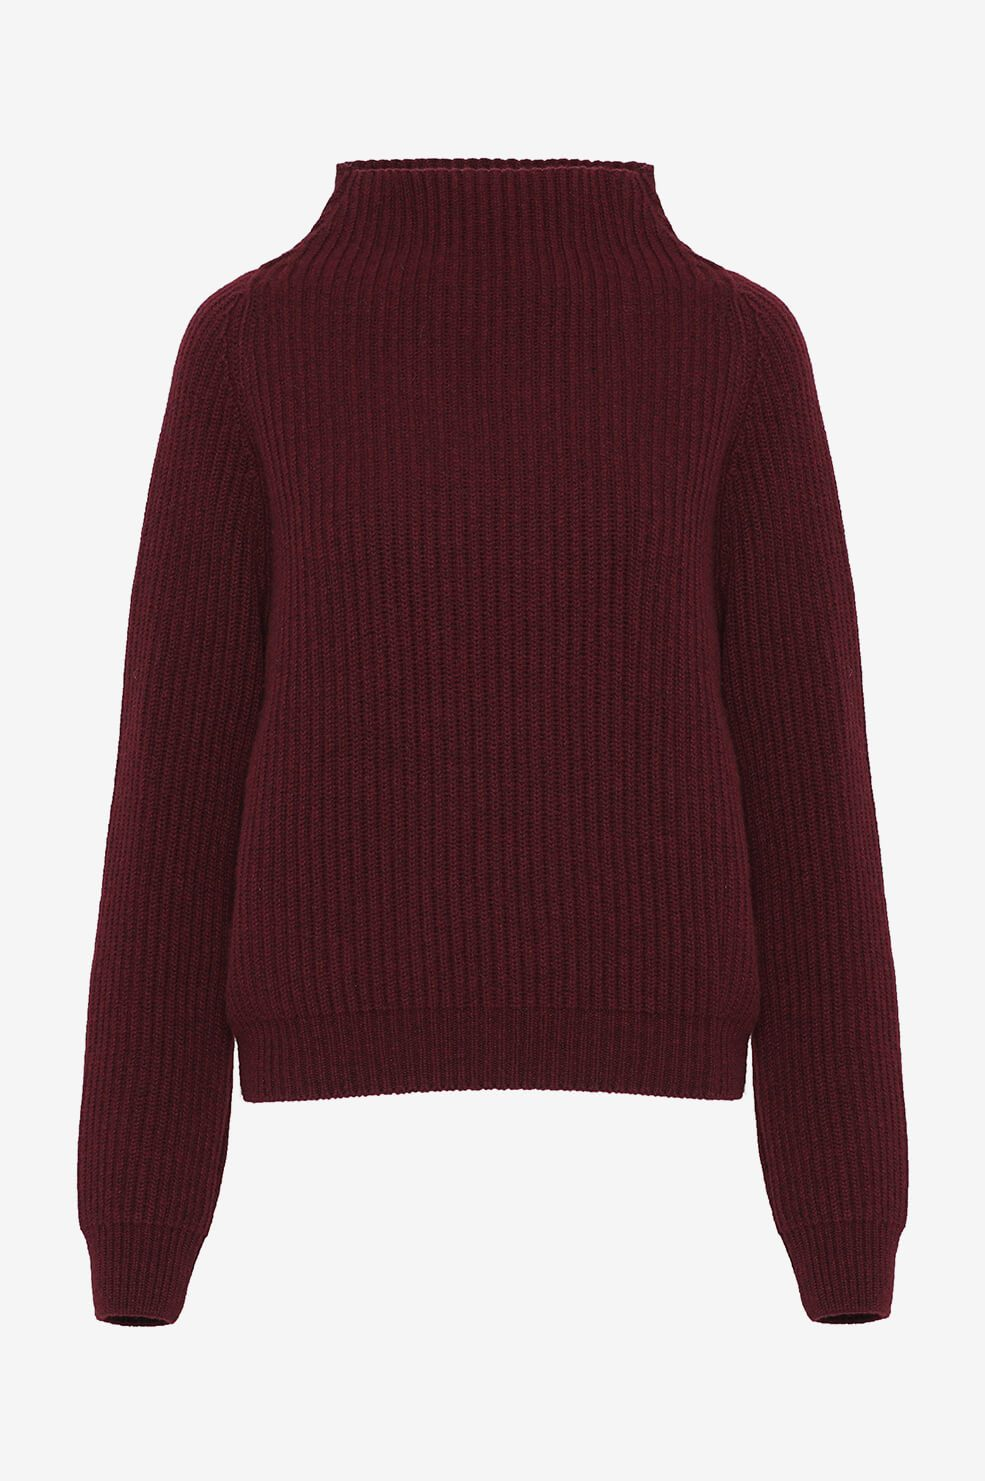 ANINE BING Emelie Sweater - Burgundy